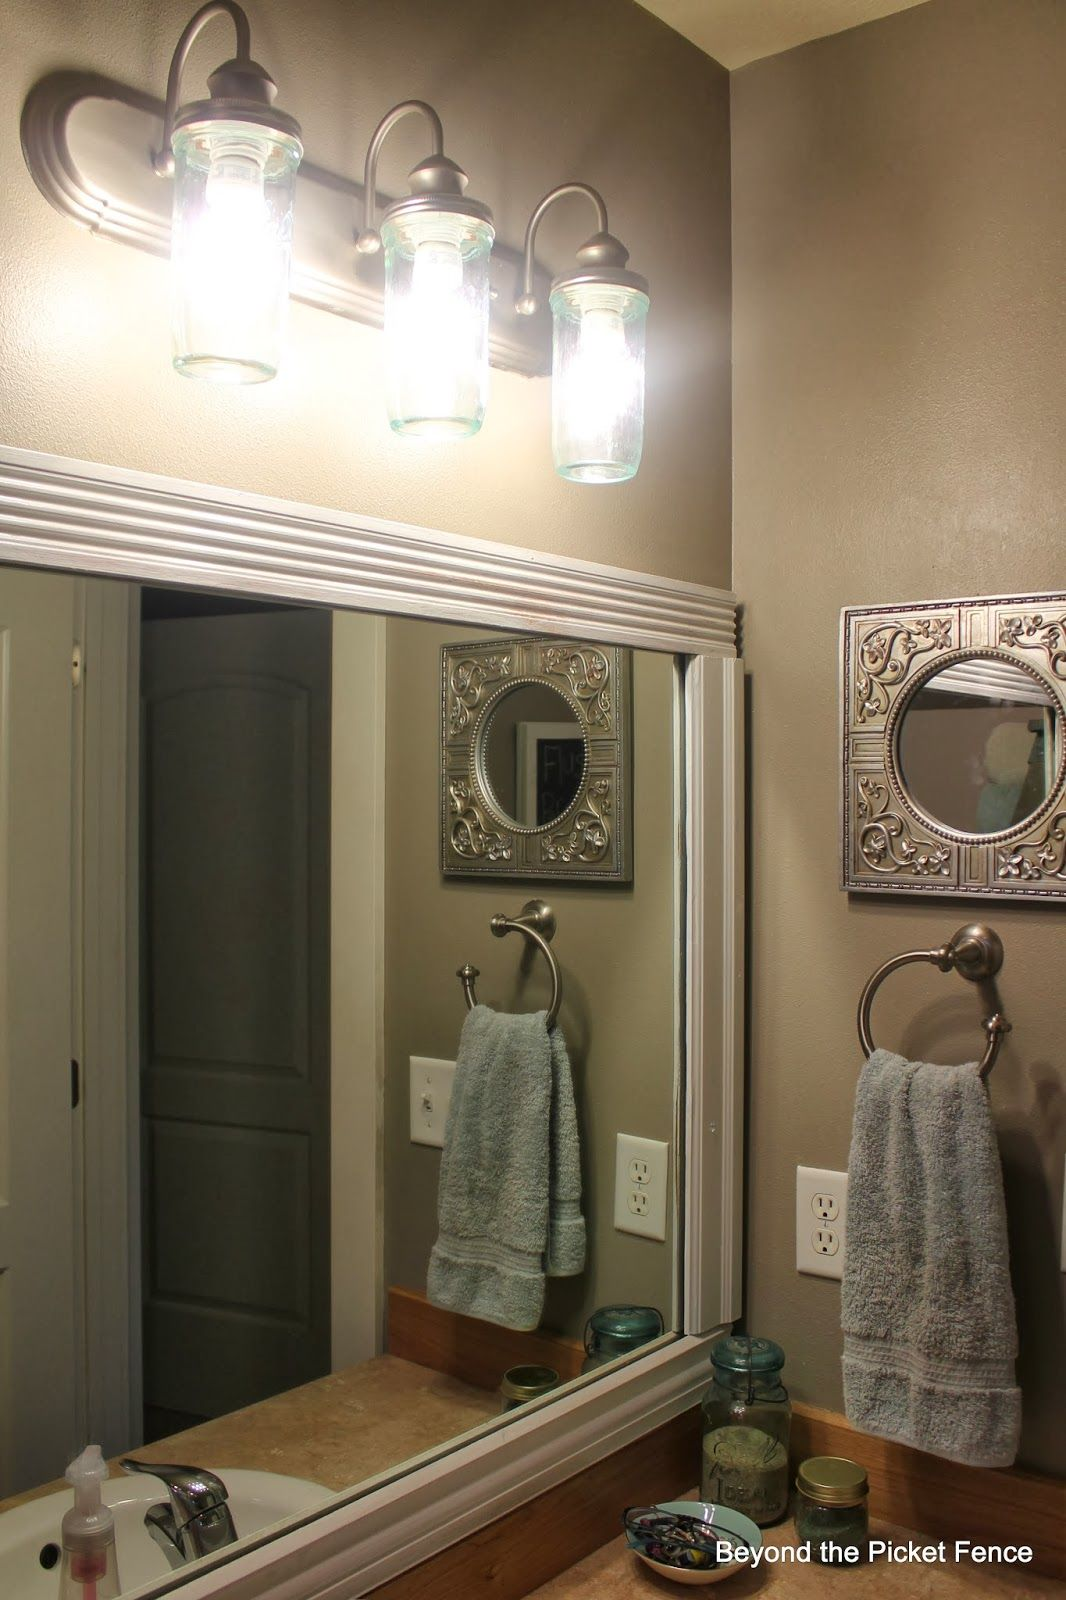 Exquisite 3 Bulb Vintage Style Wall Vanity Edison Light